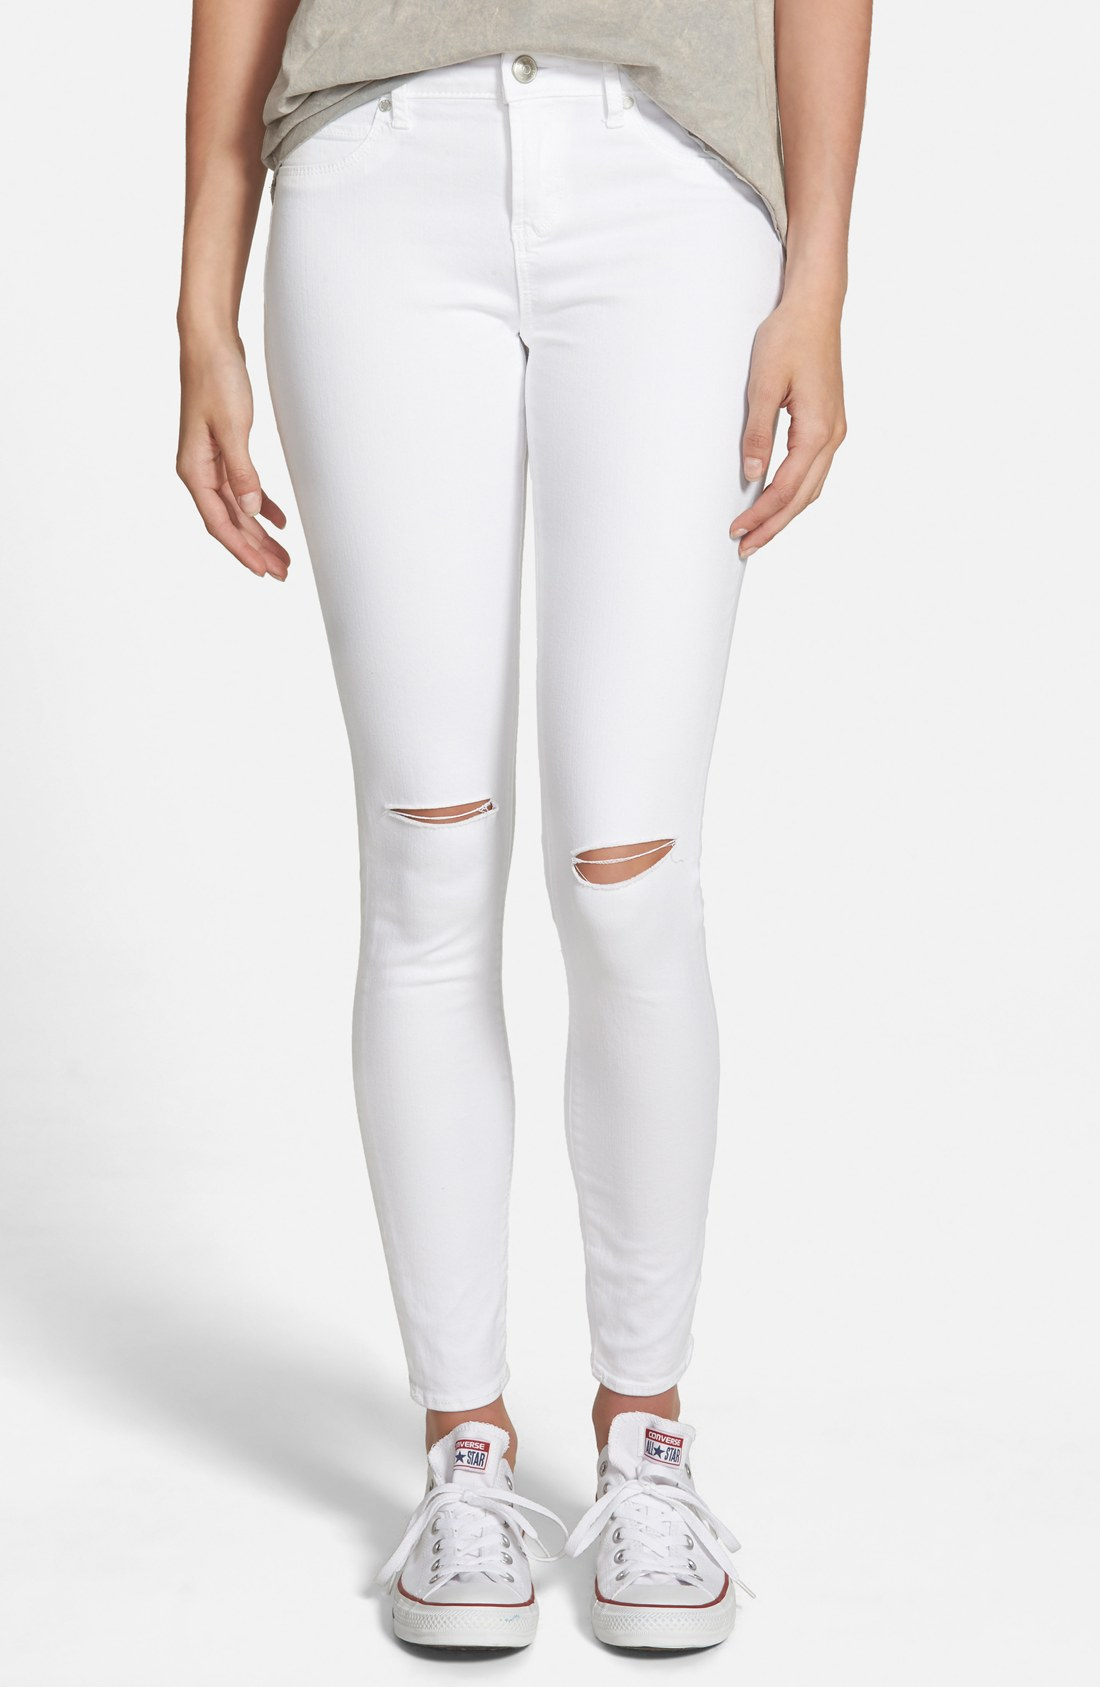 7ba2899acec1 Articles of Society  Sarah  Distressed Skinny Jeans (Whiteout ...